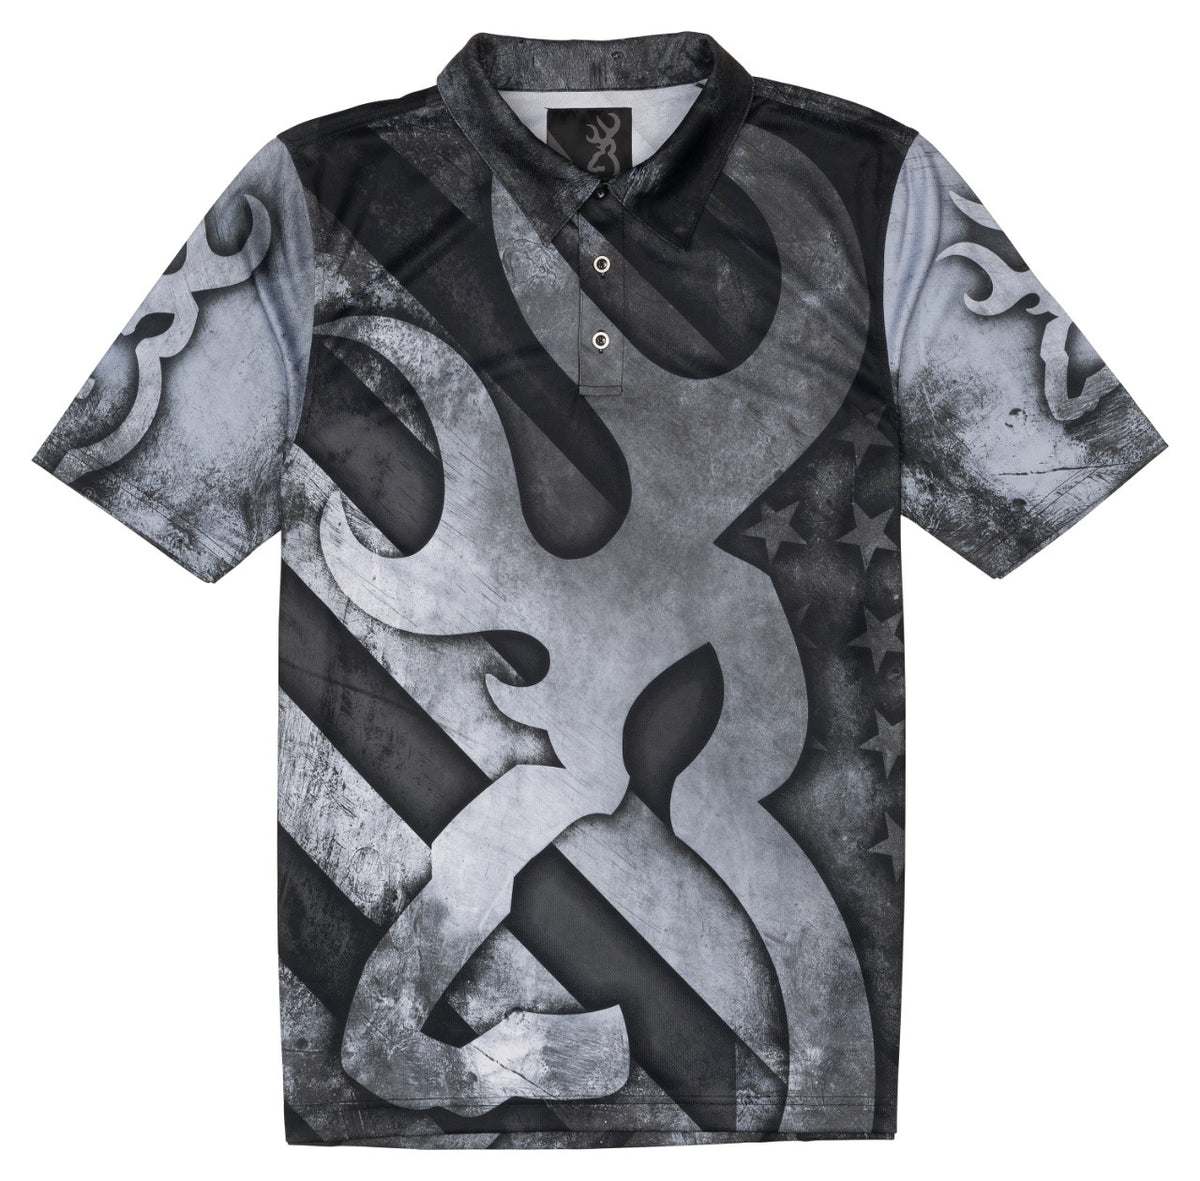 SHT,BROWNING TEAM,BLACK/WHITE,2XL